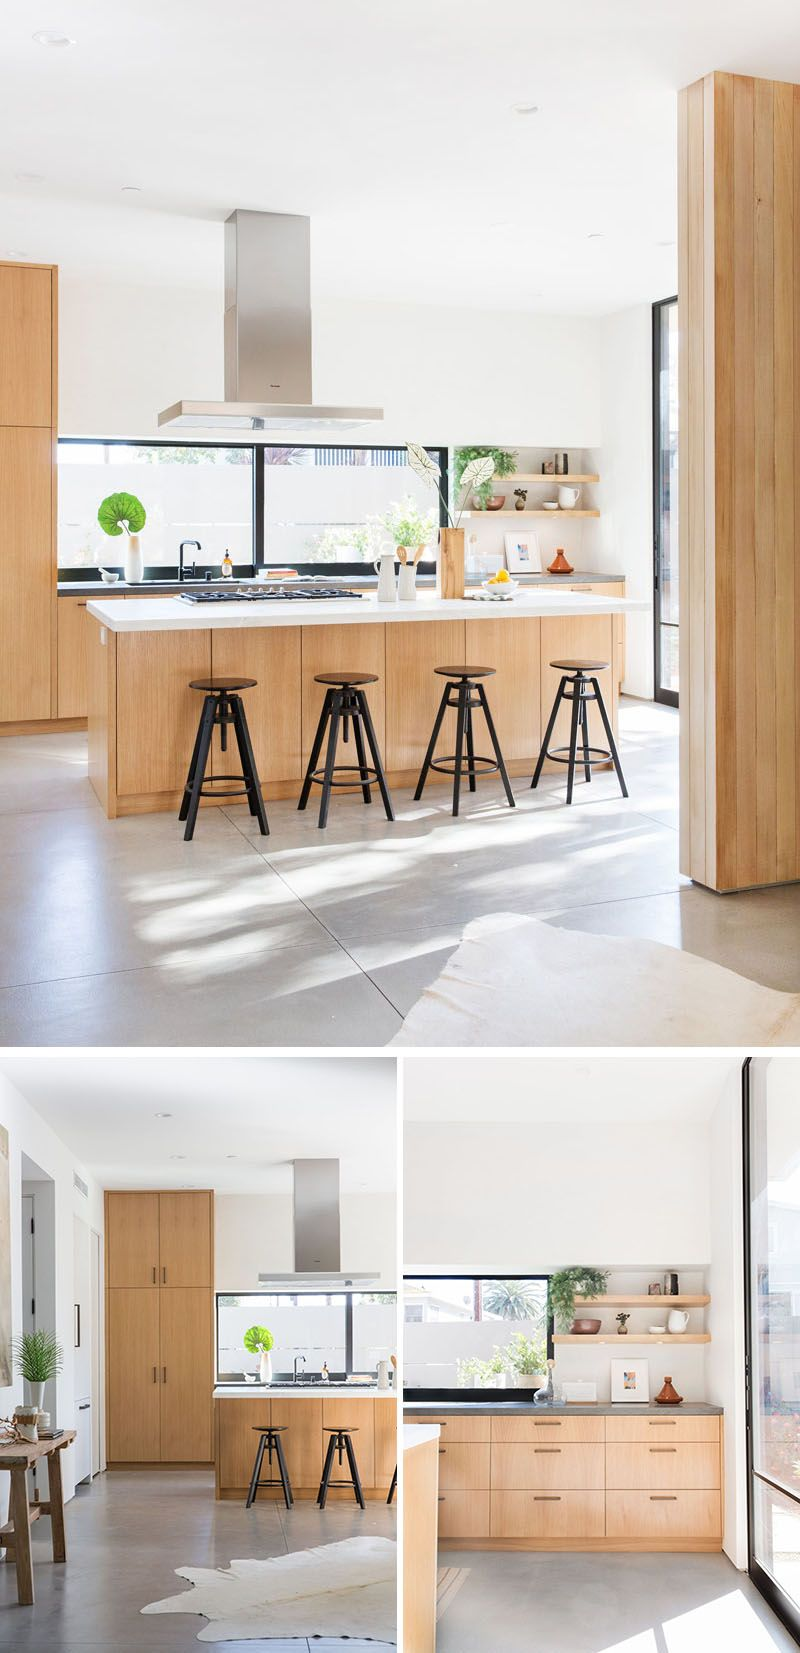 The 5th Street Residence By Electric Bowery | Light oak cabinets ...